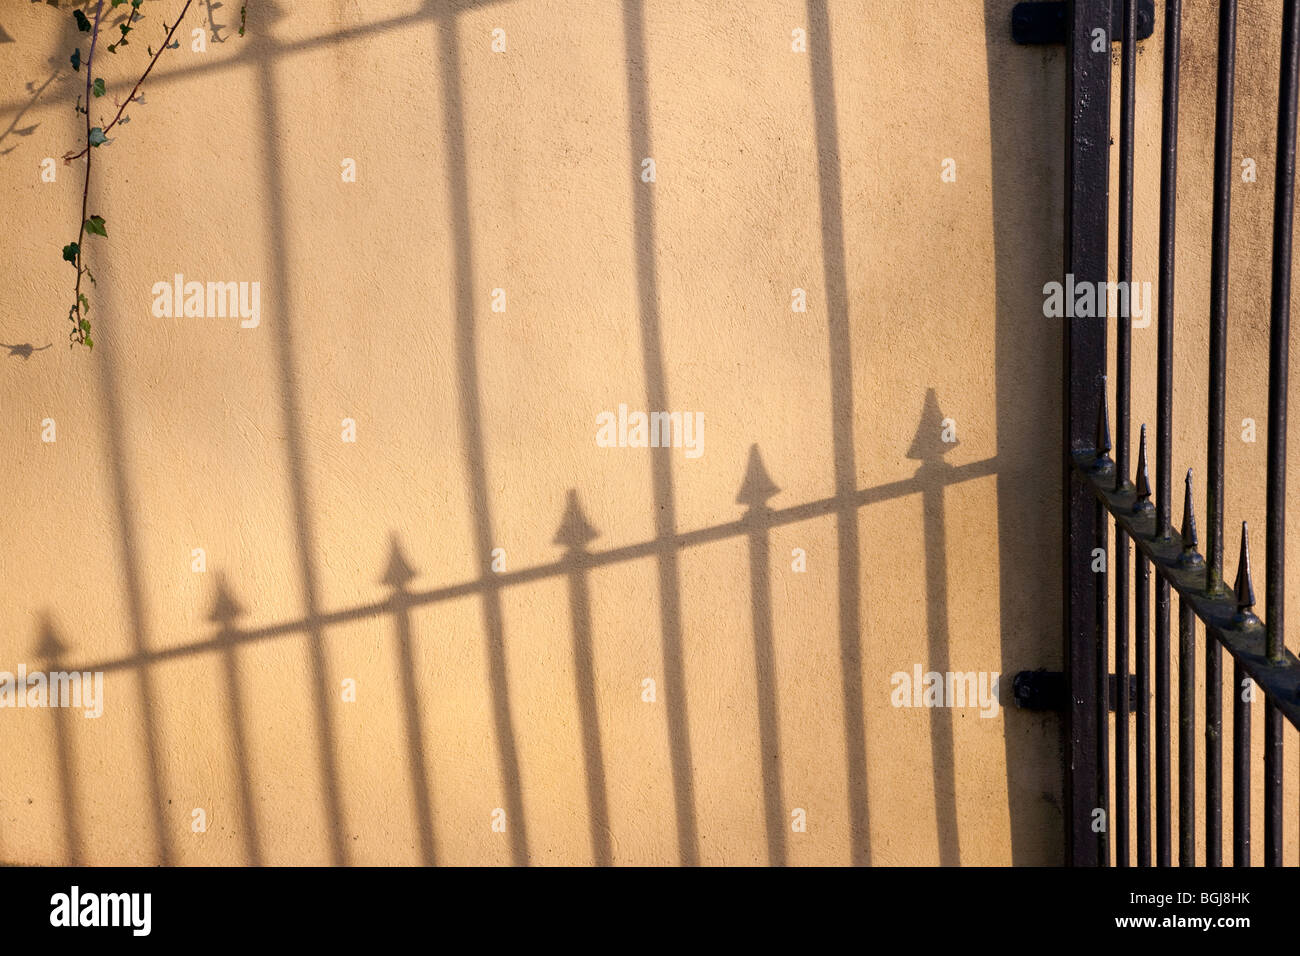 Wall Fence Railing Stock Photos & Wall Fence Railing Stock Images ...